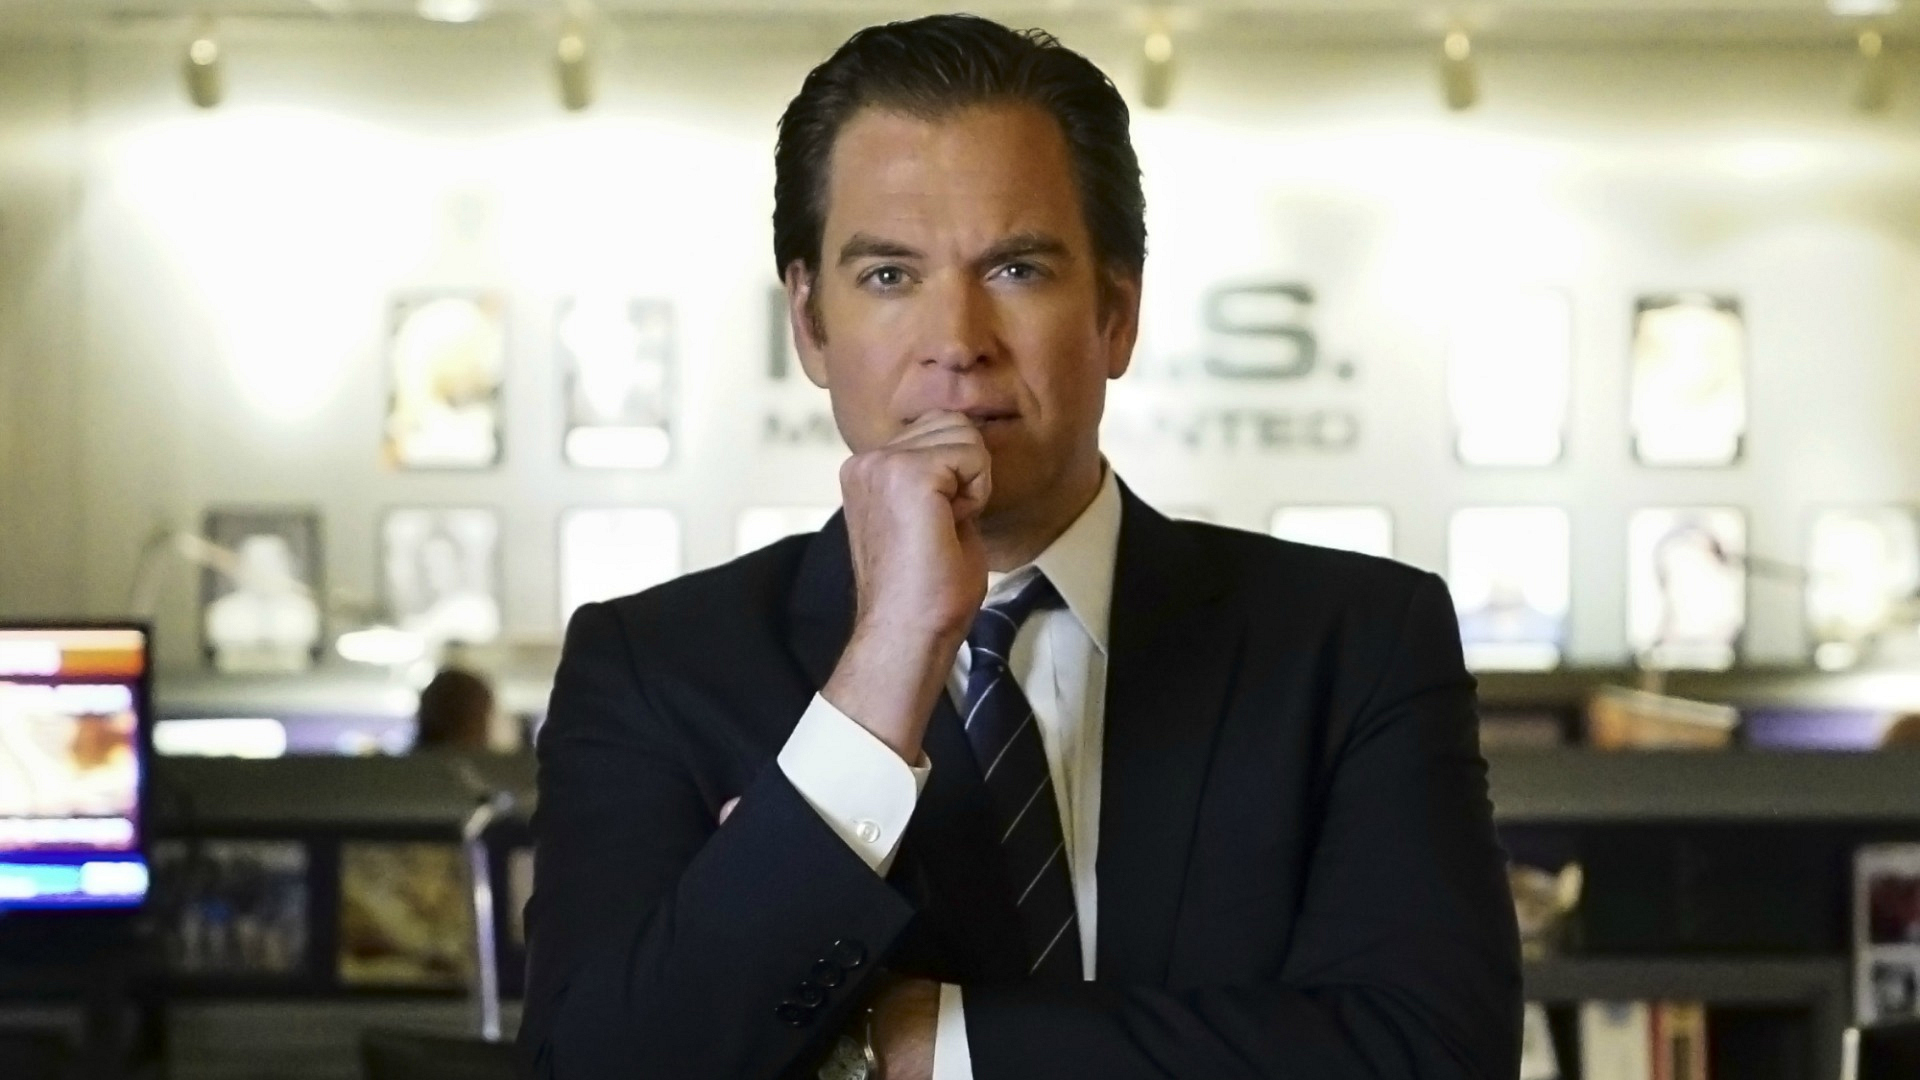 DiNozzo stares into his future.